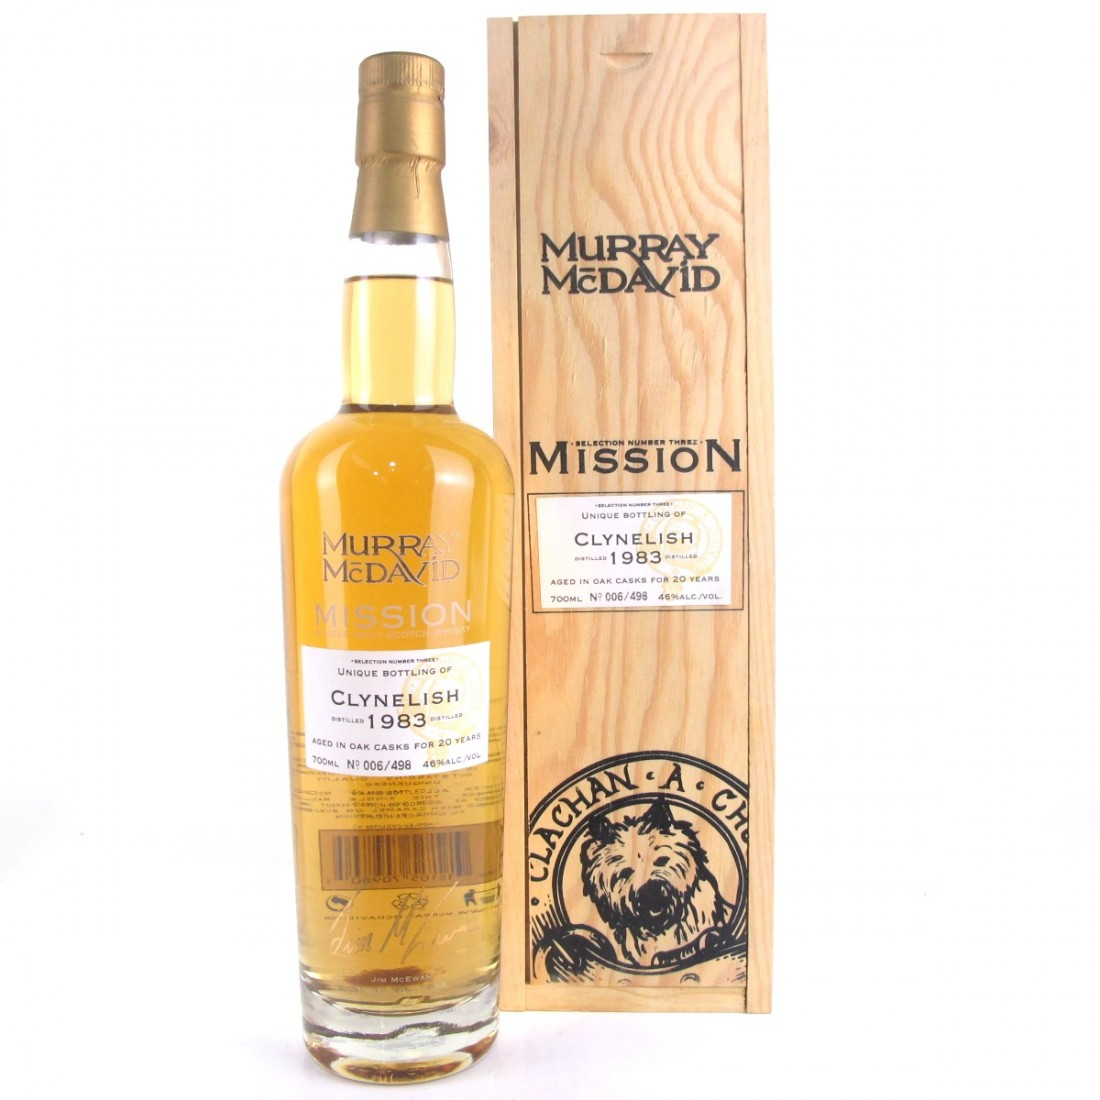 Clynelish 1983 Murray McDavid 20 Year Old / Signed